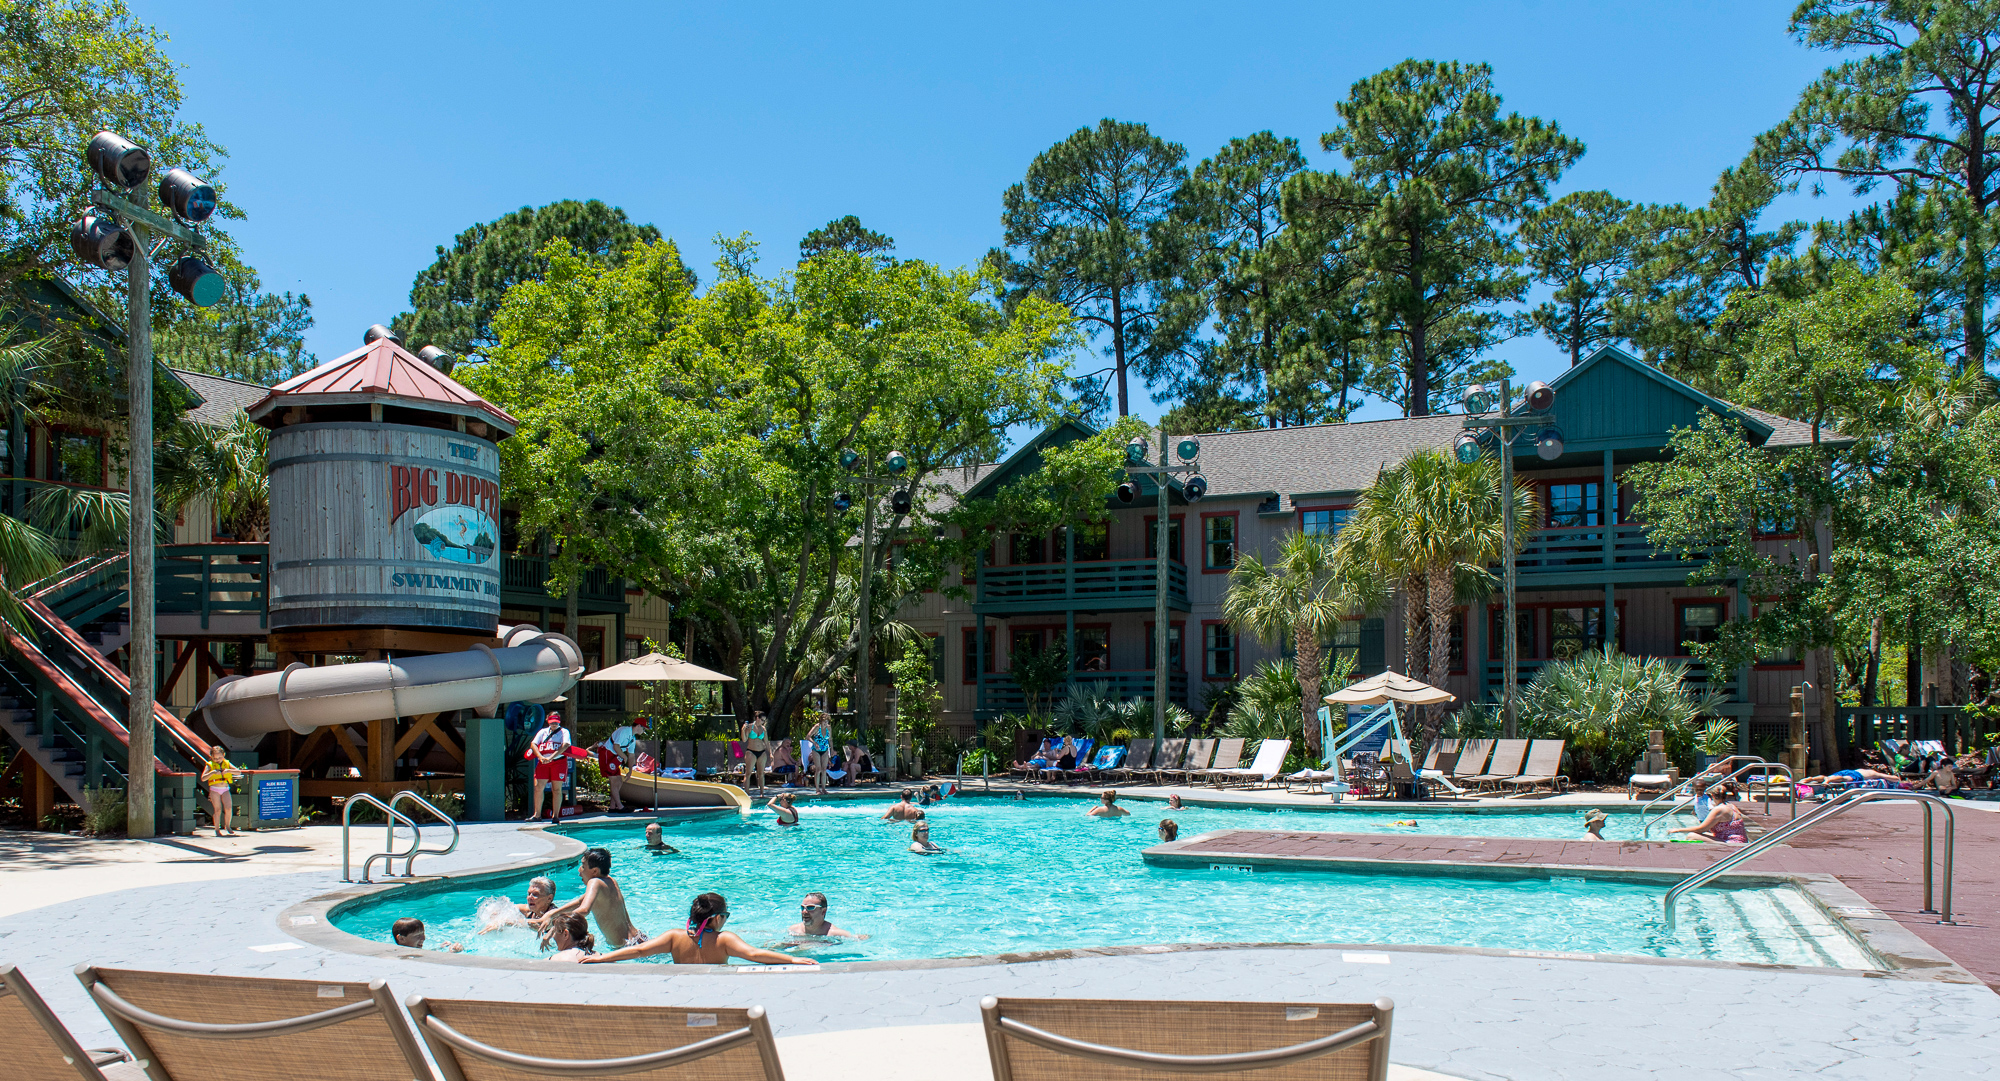 The Big Dipper Pool at Disney's Hilton Head Island Resort